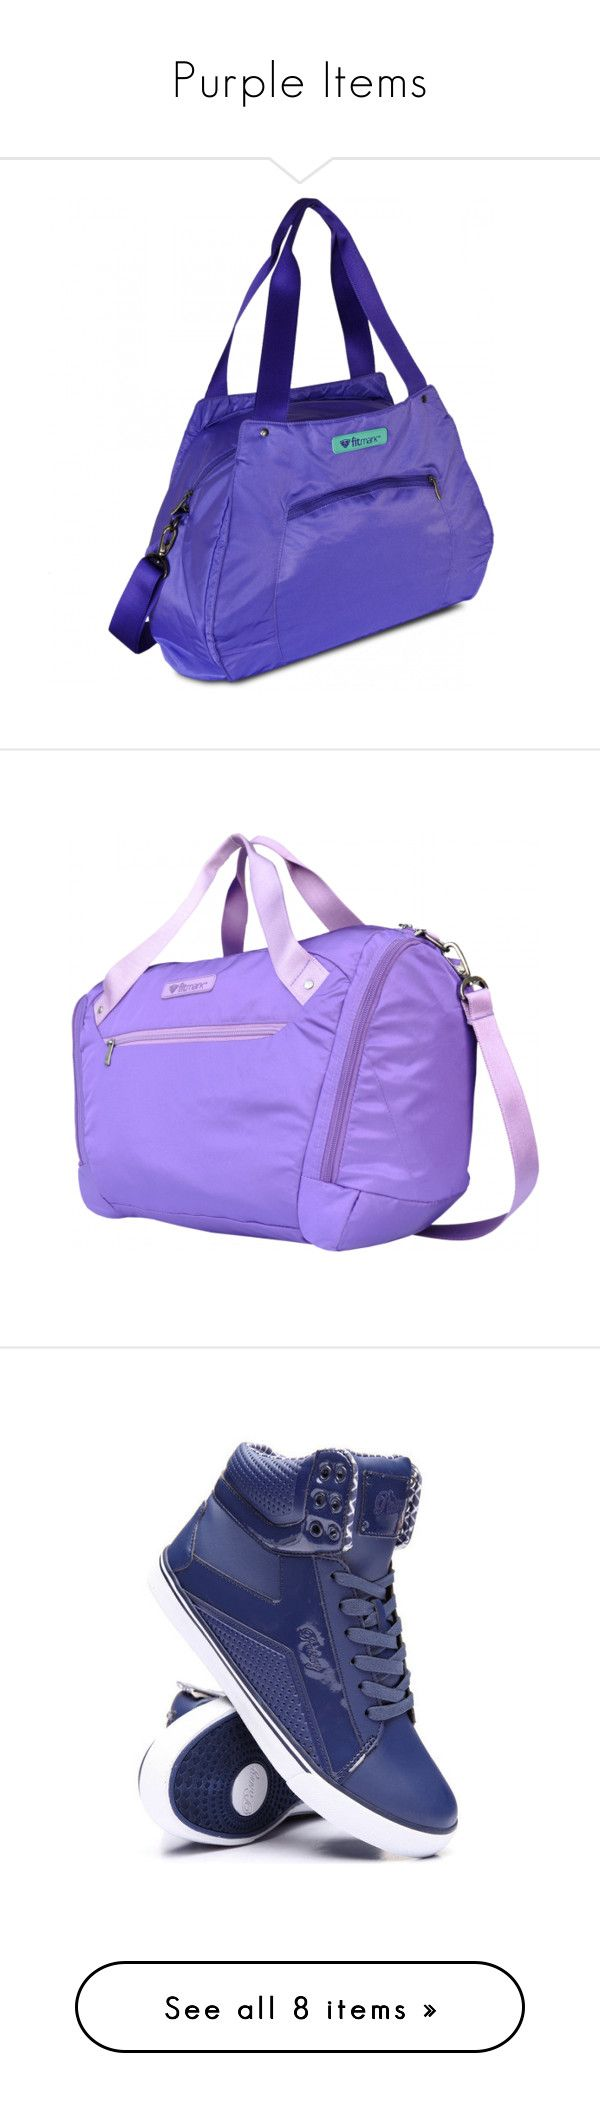 """""""Purple Items"""" by ronitaylorfit ❤ liked on Polyvore featuring bags, handbags, tote bags, tote hand bags, tote bag purse, blue tote bag, blue purse, blue tote, shoes and sneakers"""